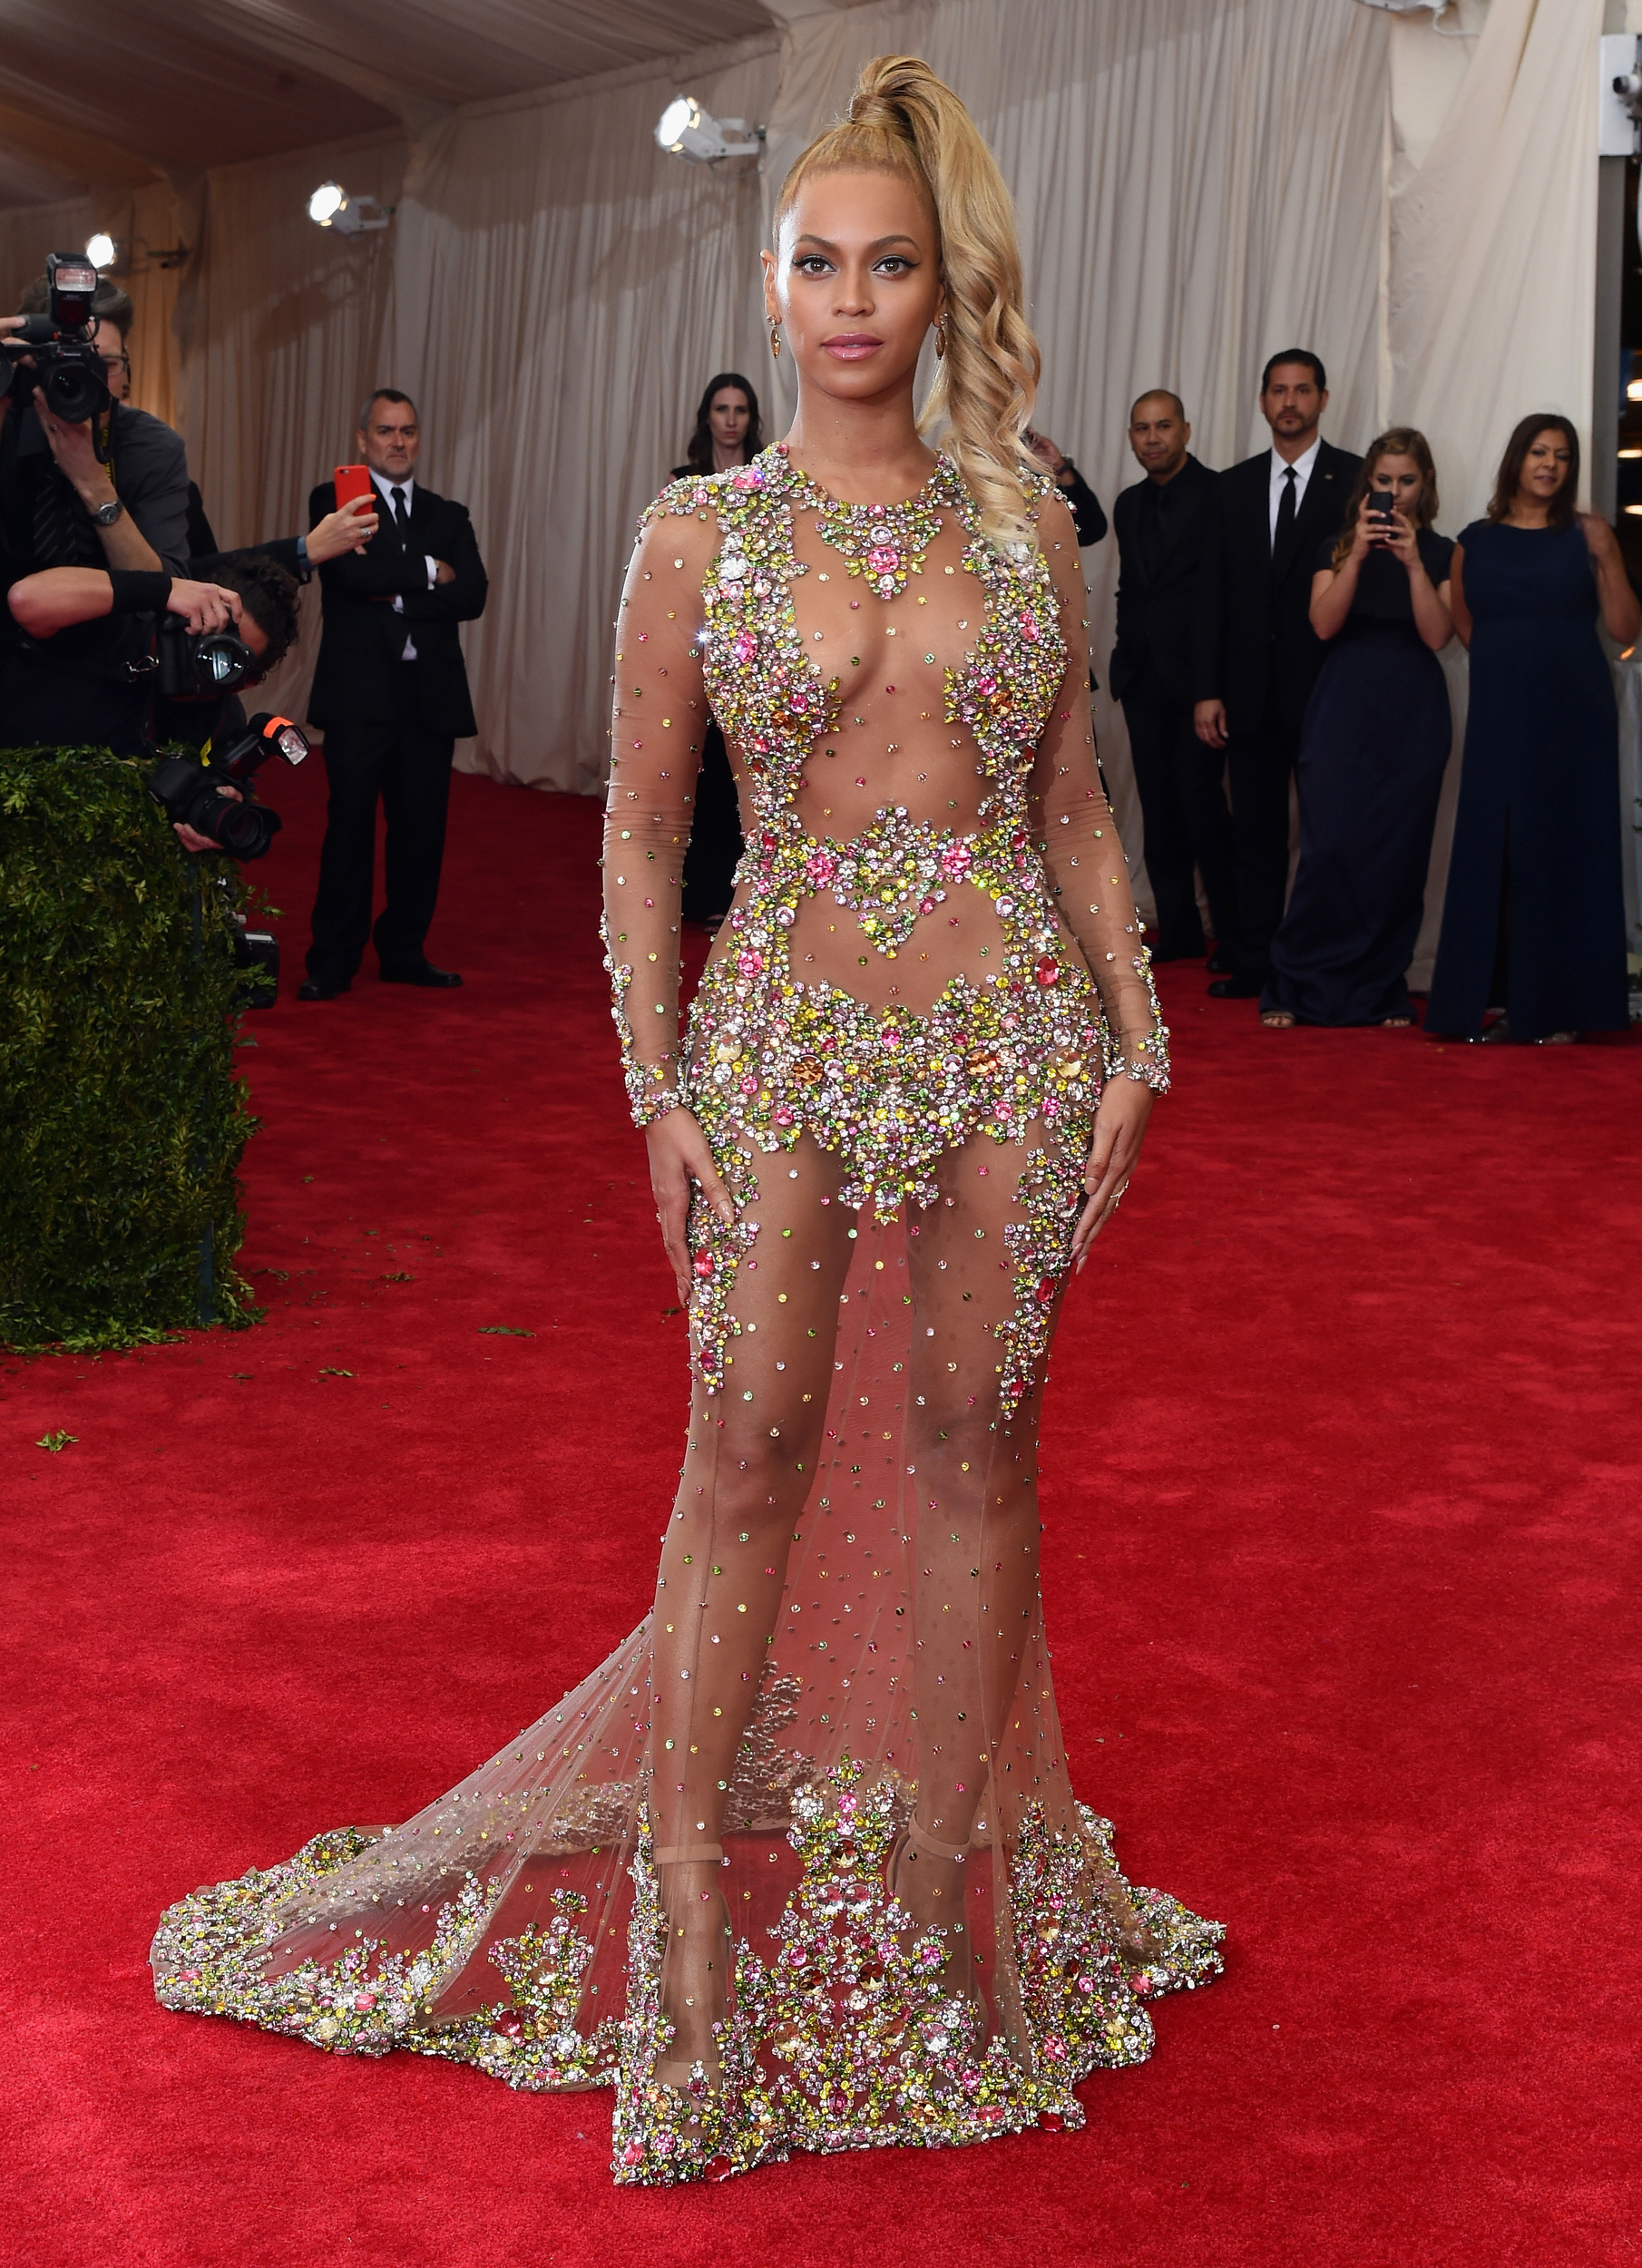 Kim Kardashian Wears See Through Dress To 2015 Met Gala